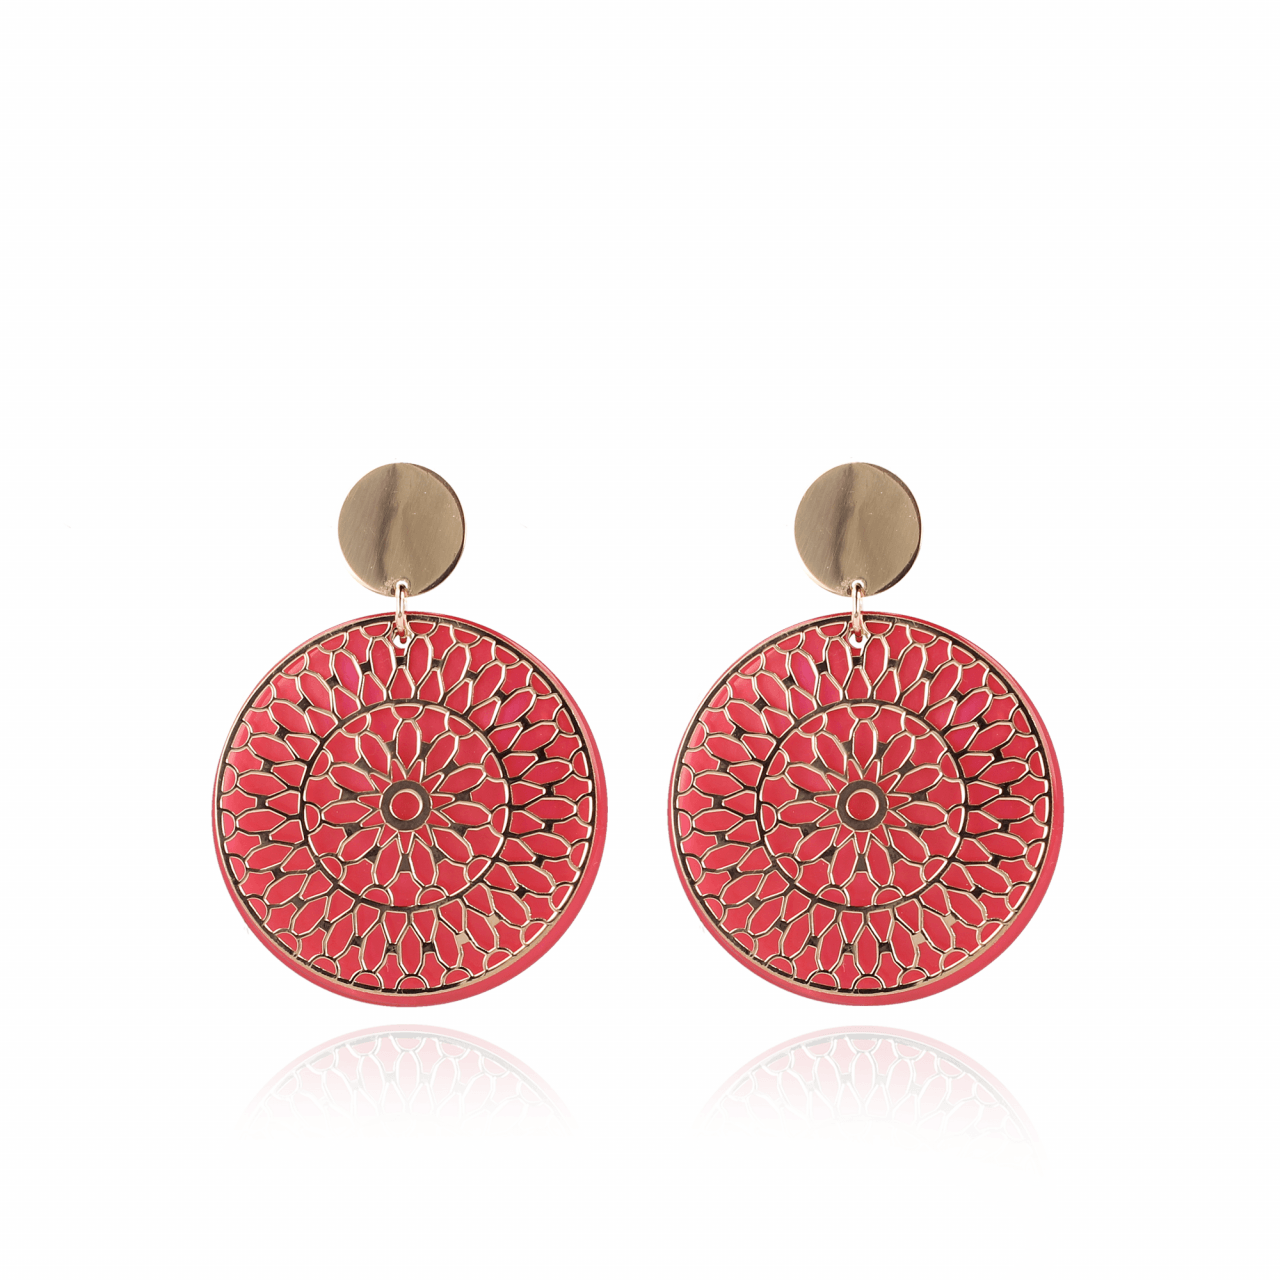 Coral red resin closed circle L earrings